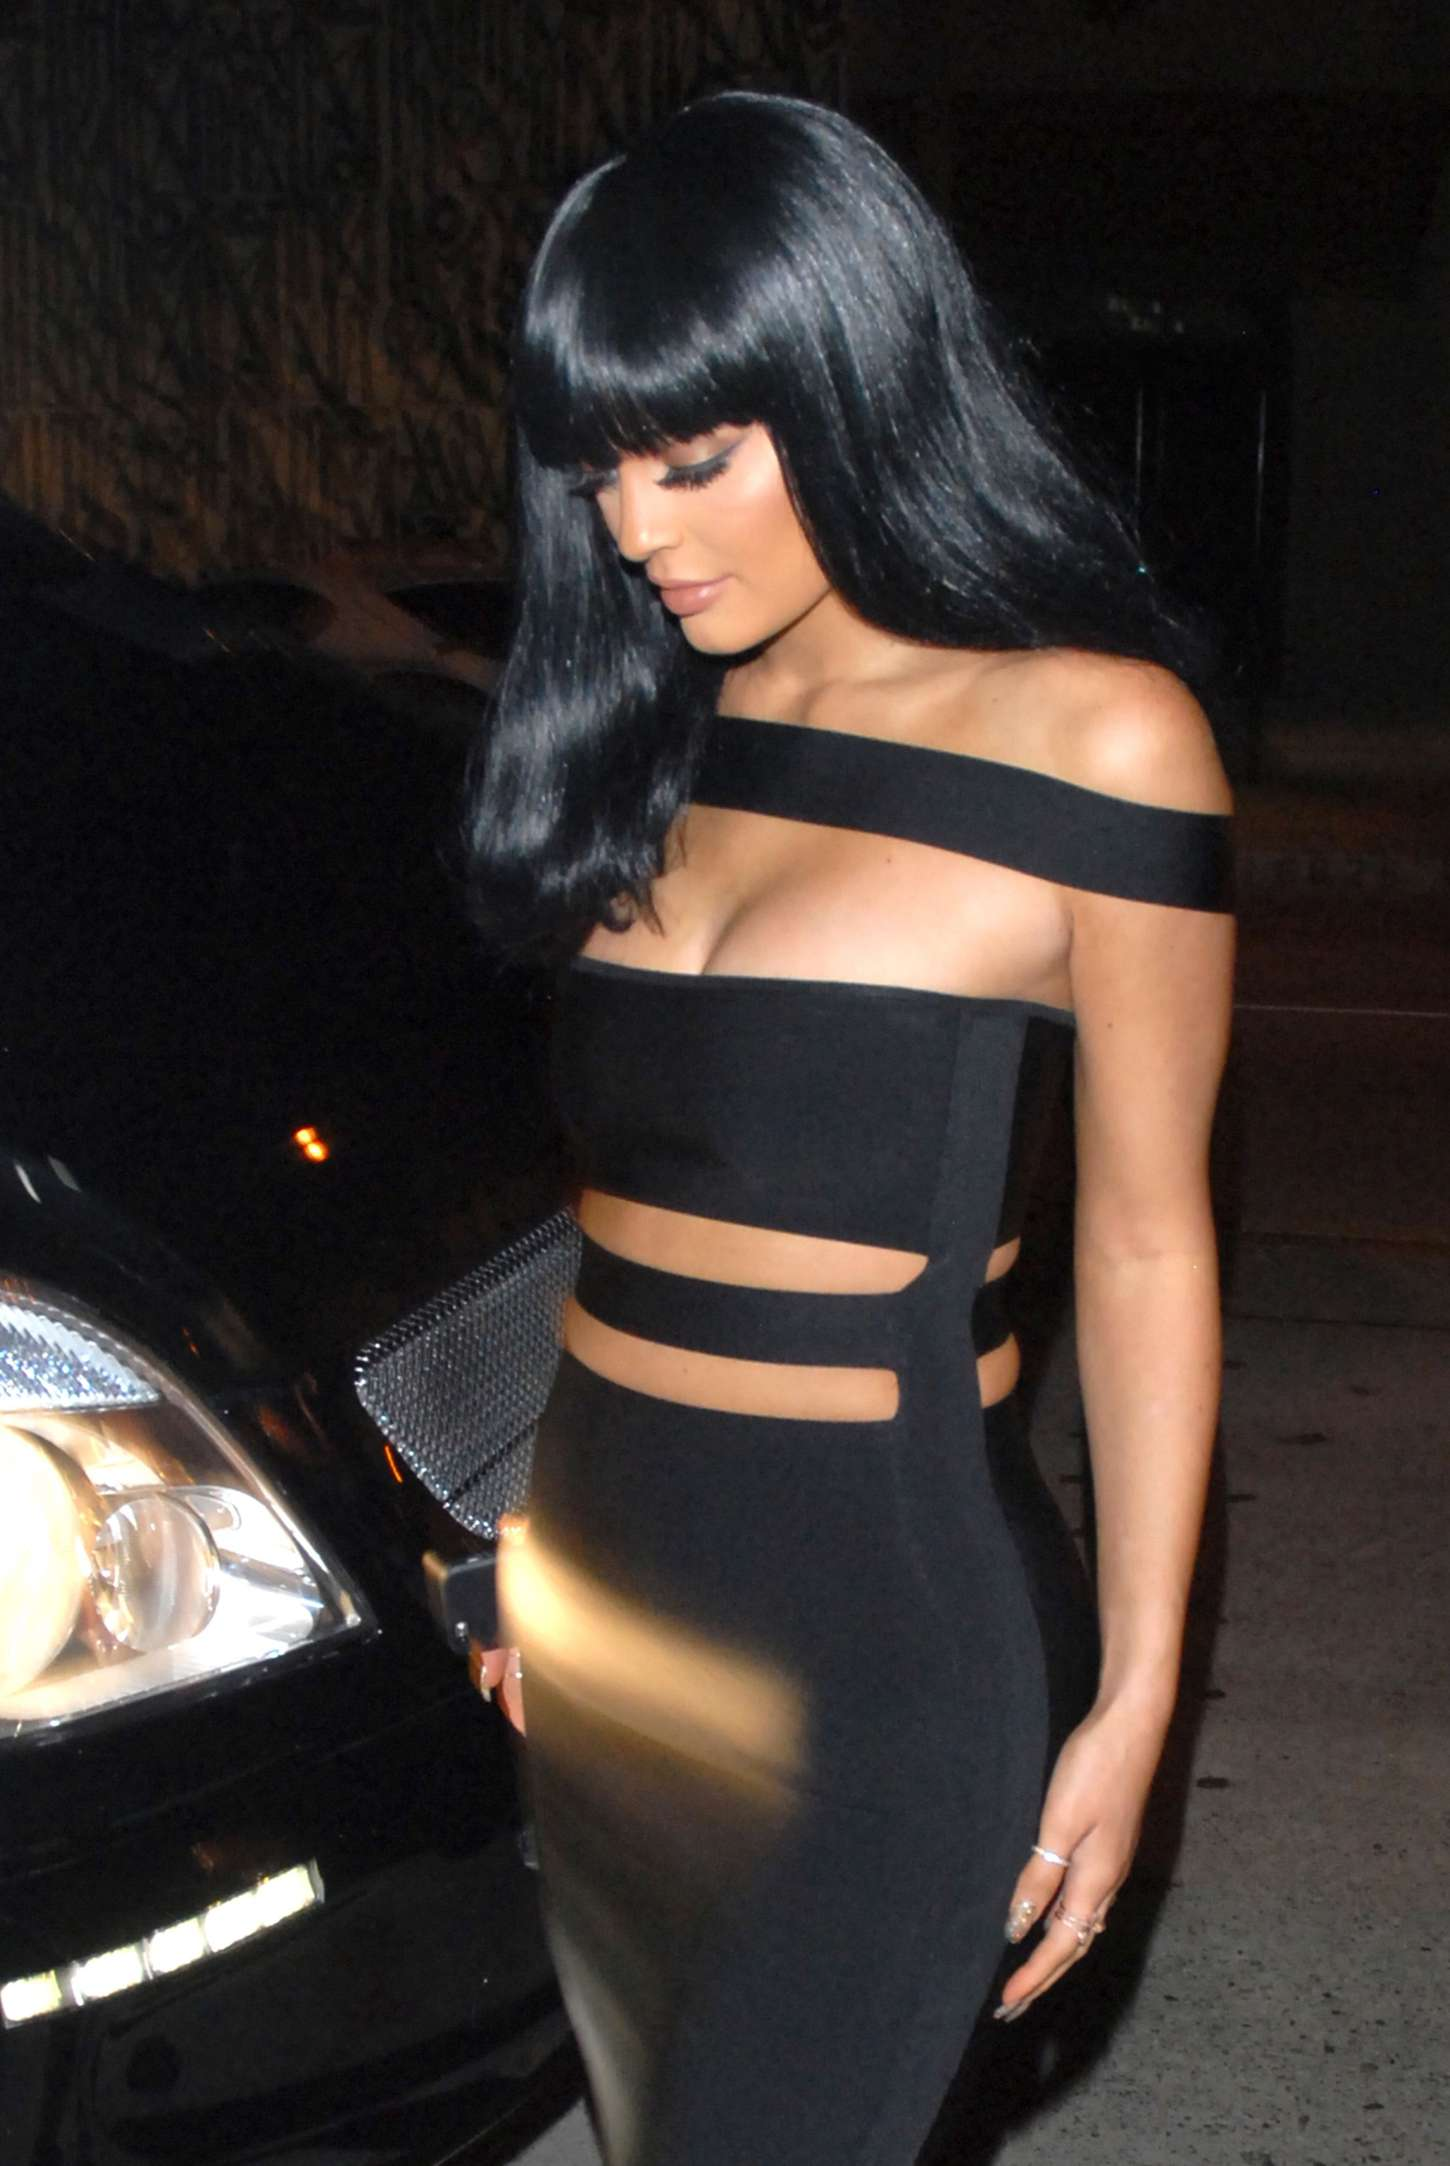 df007e49e Kylie Jenner in Tight Black Dress -01 | GotCeleb